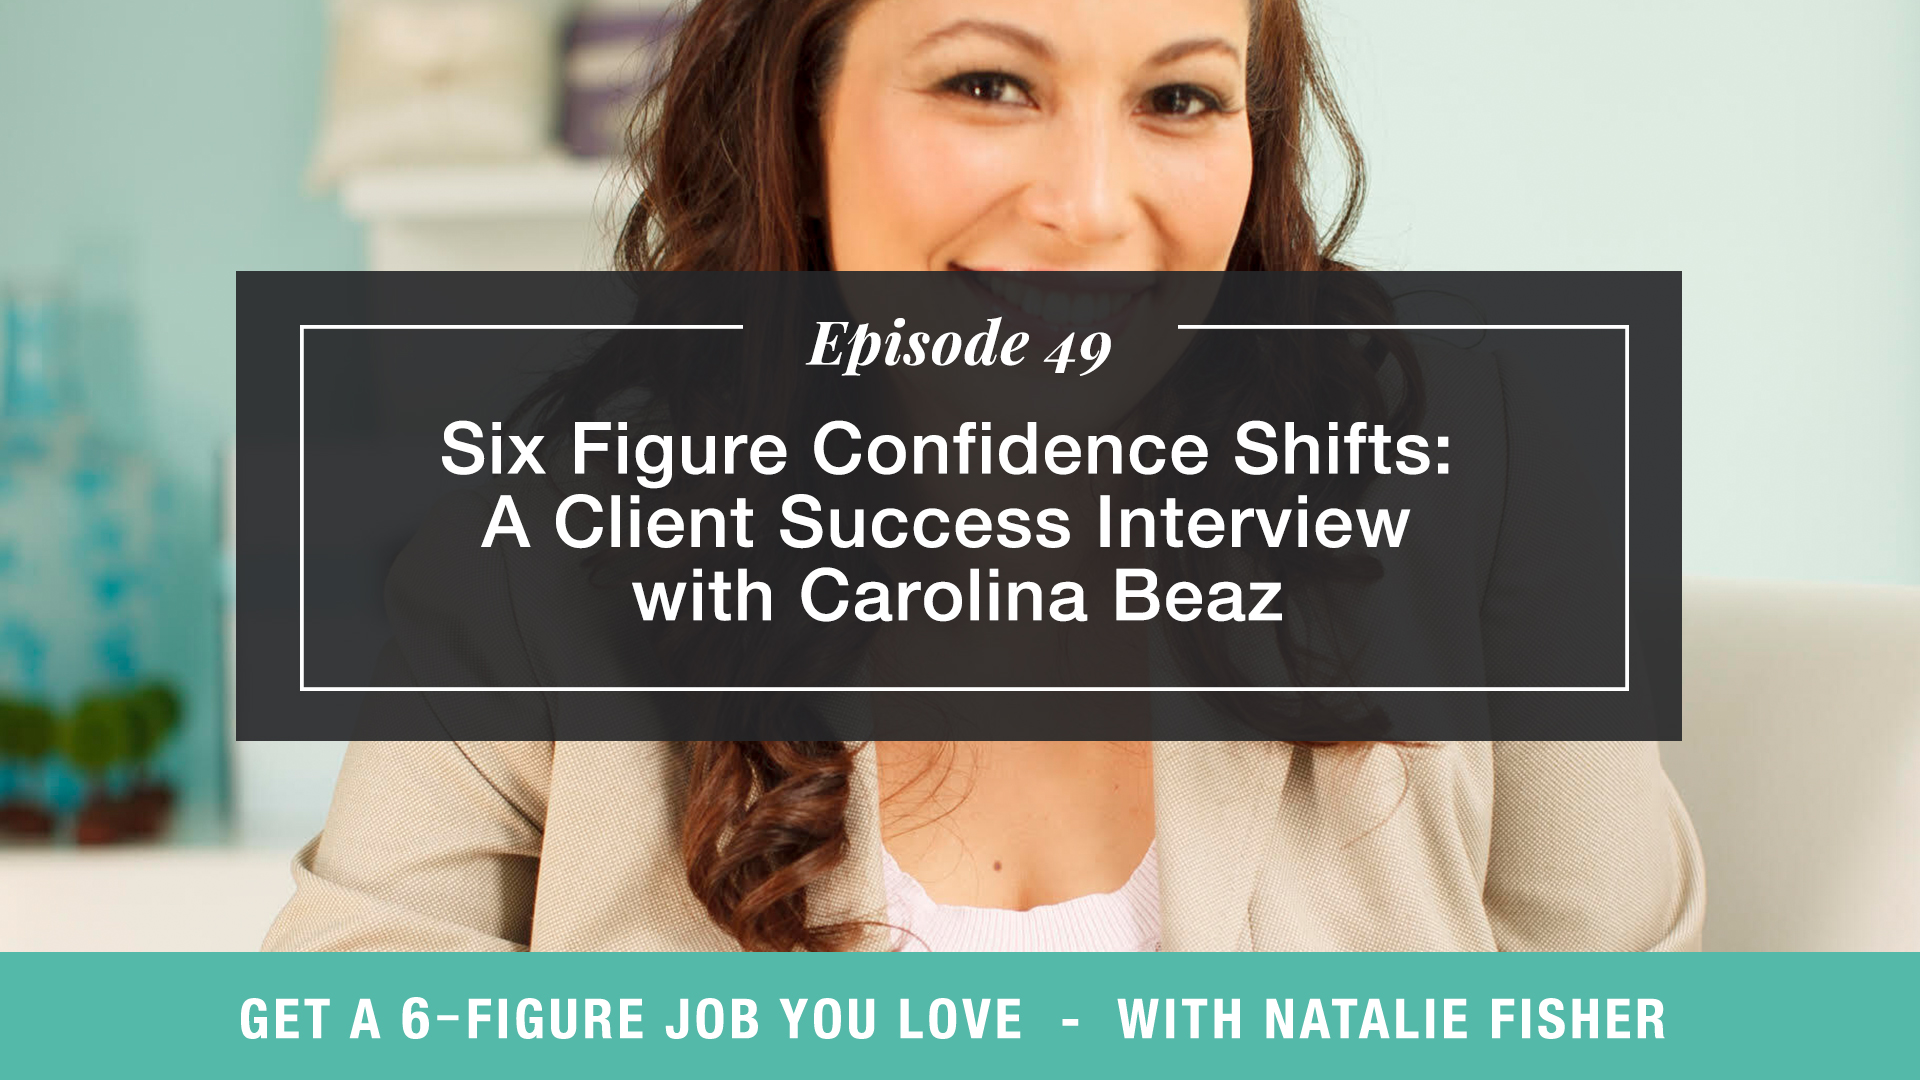 The Get a Six Figure Job You Love Podcast with Natalie Fisher | Six Figure Confidence Shifts: A Client Success Interview with Carolina Beaz